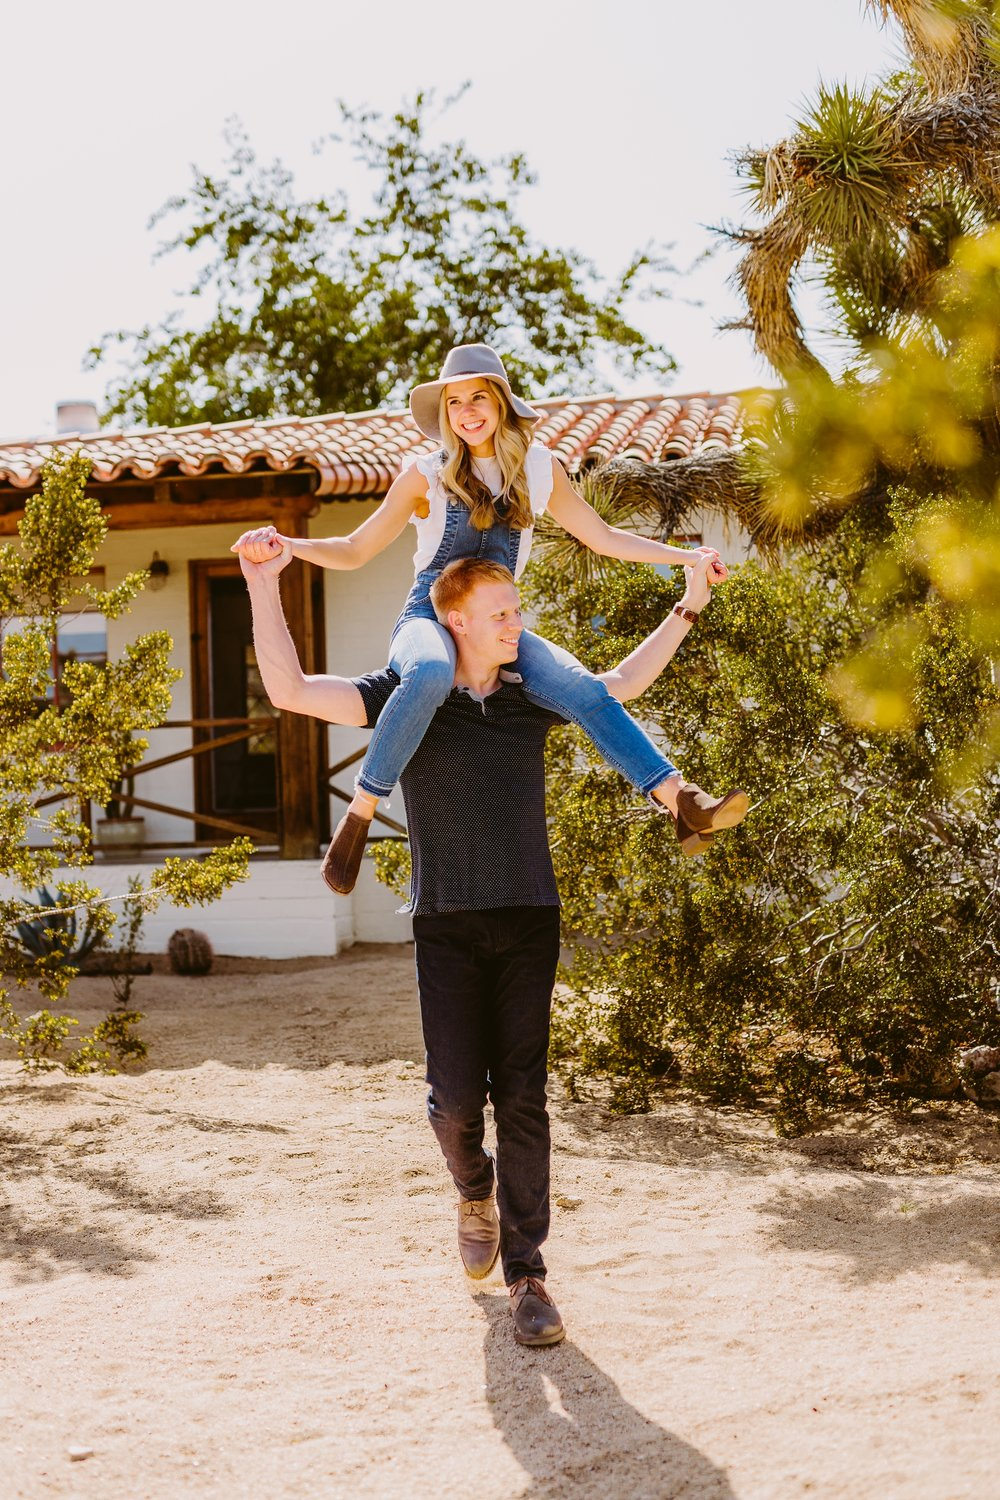 Joshua Tree House | Joshua Tree Engagement | Victoria Heer Photography | Joshua Tree Photographer | Southern California Wedding Photographer